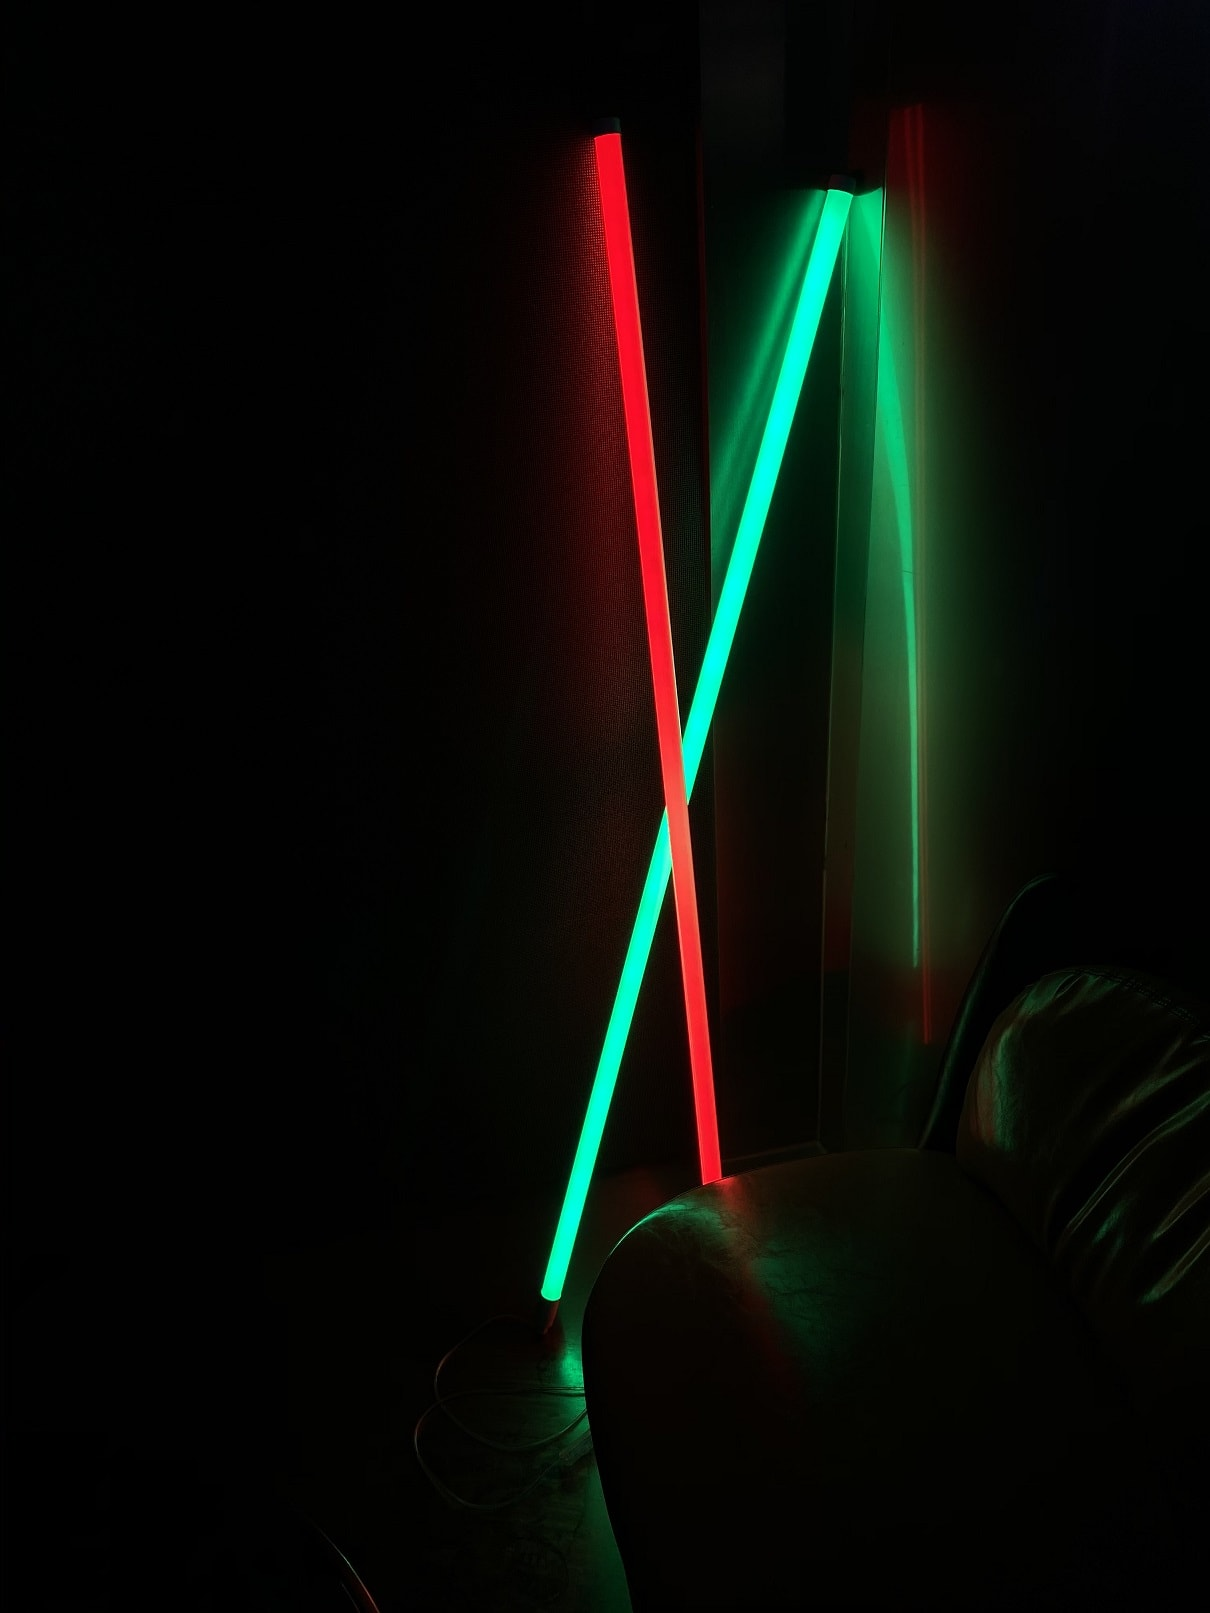 green and red neon lamps